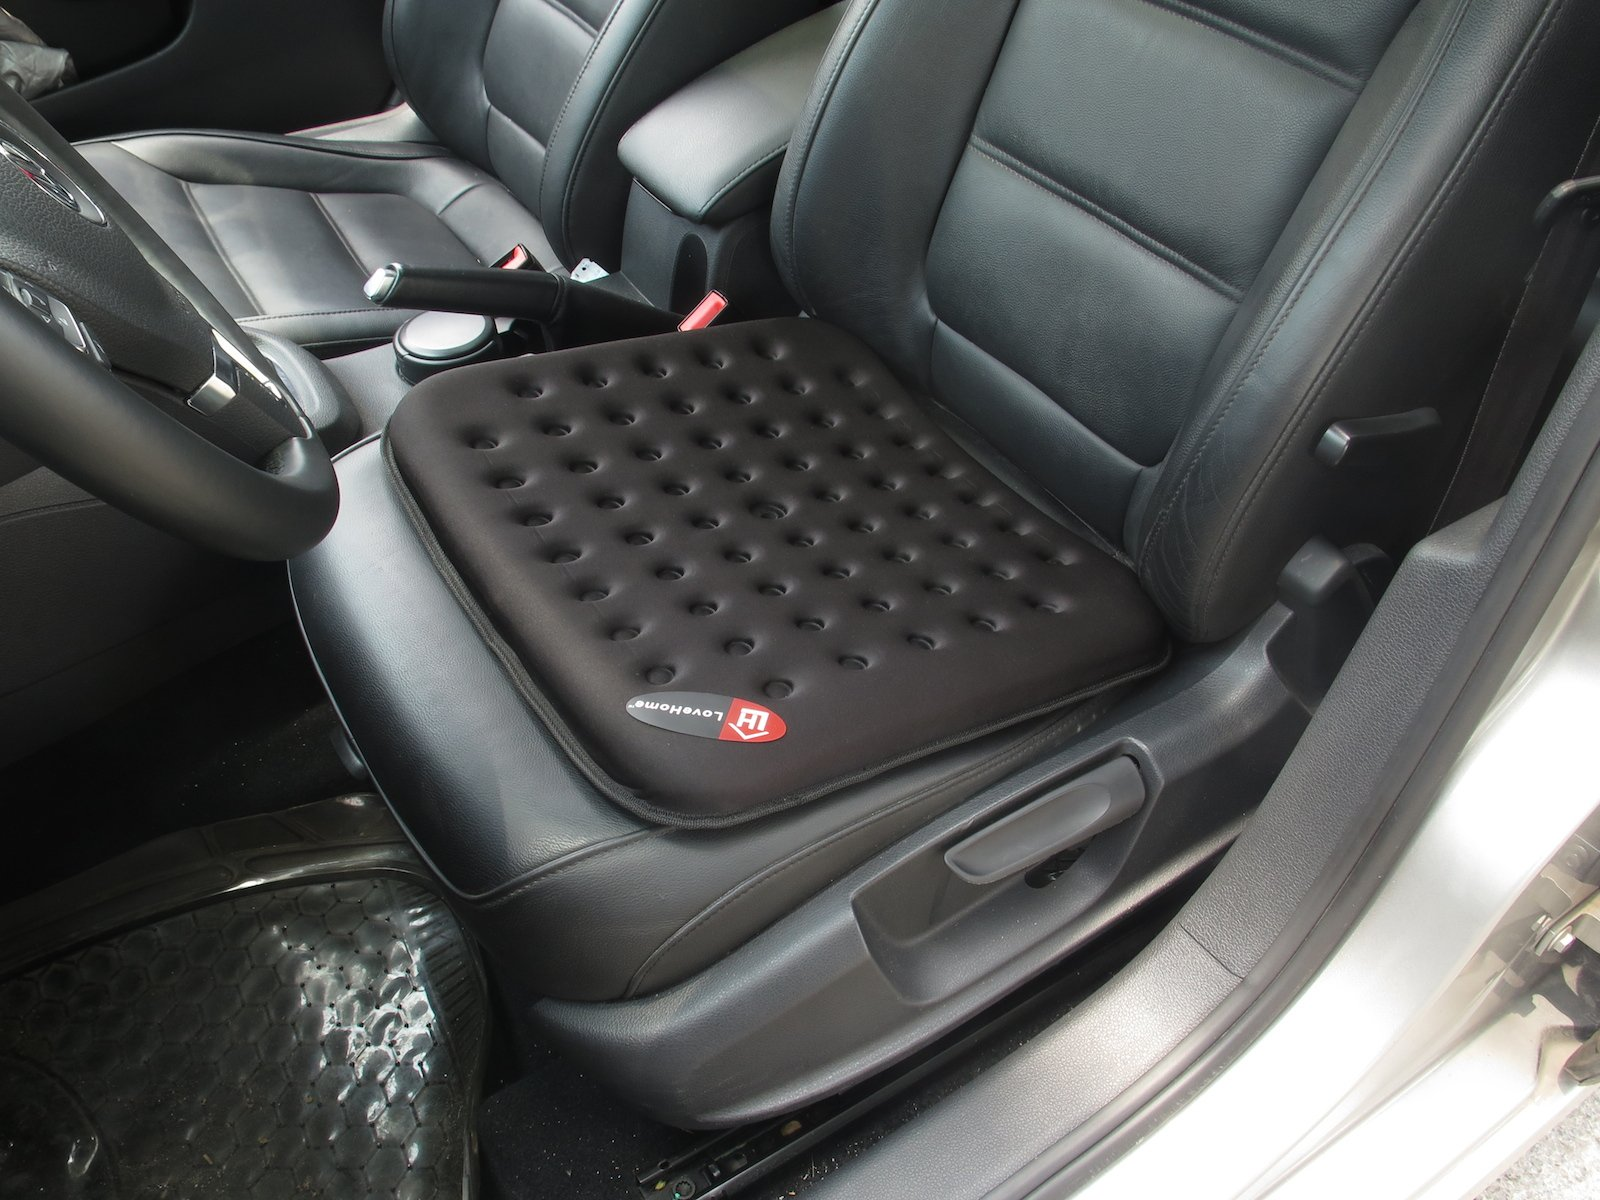 Finally The Seat Comes With Rubberised Slip Proof Coating Which Makes It Stay In Place On Your Car